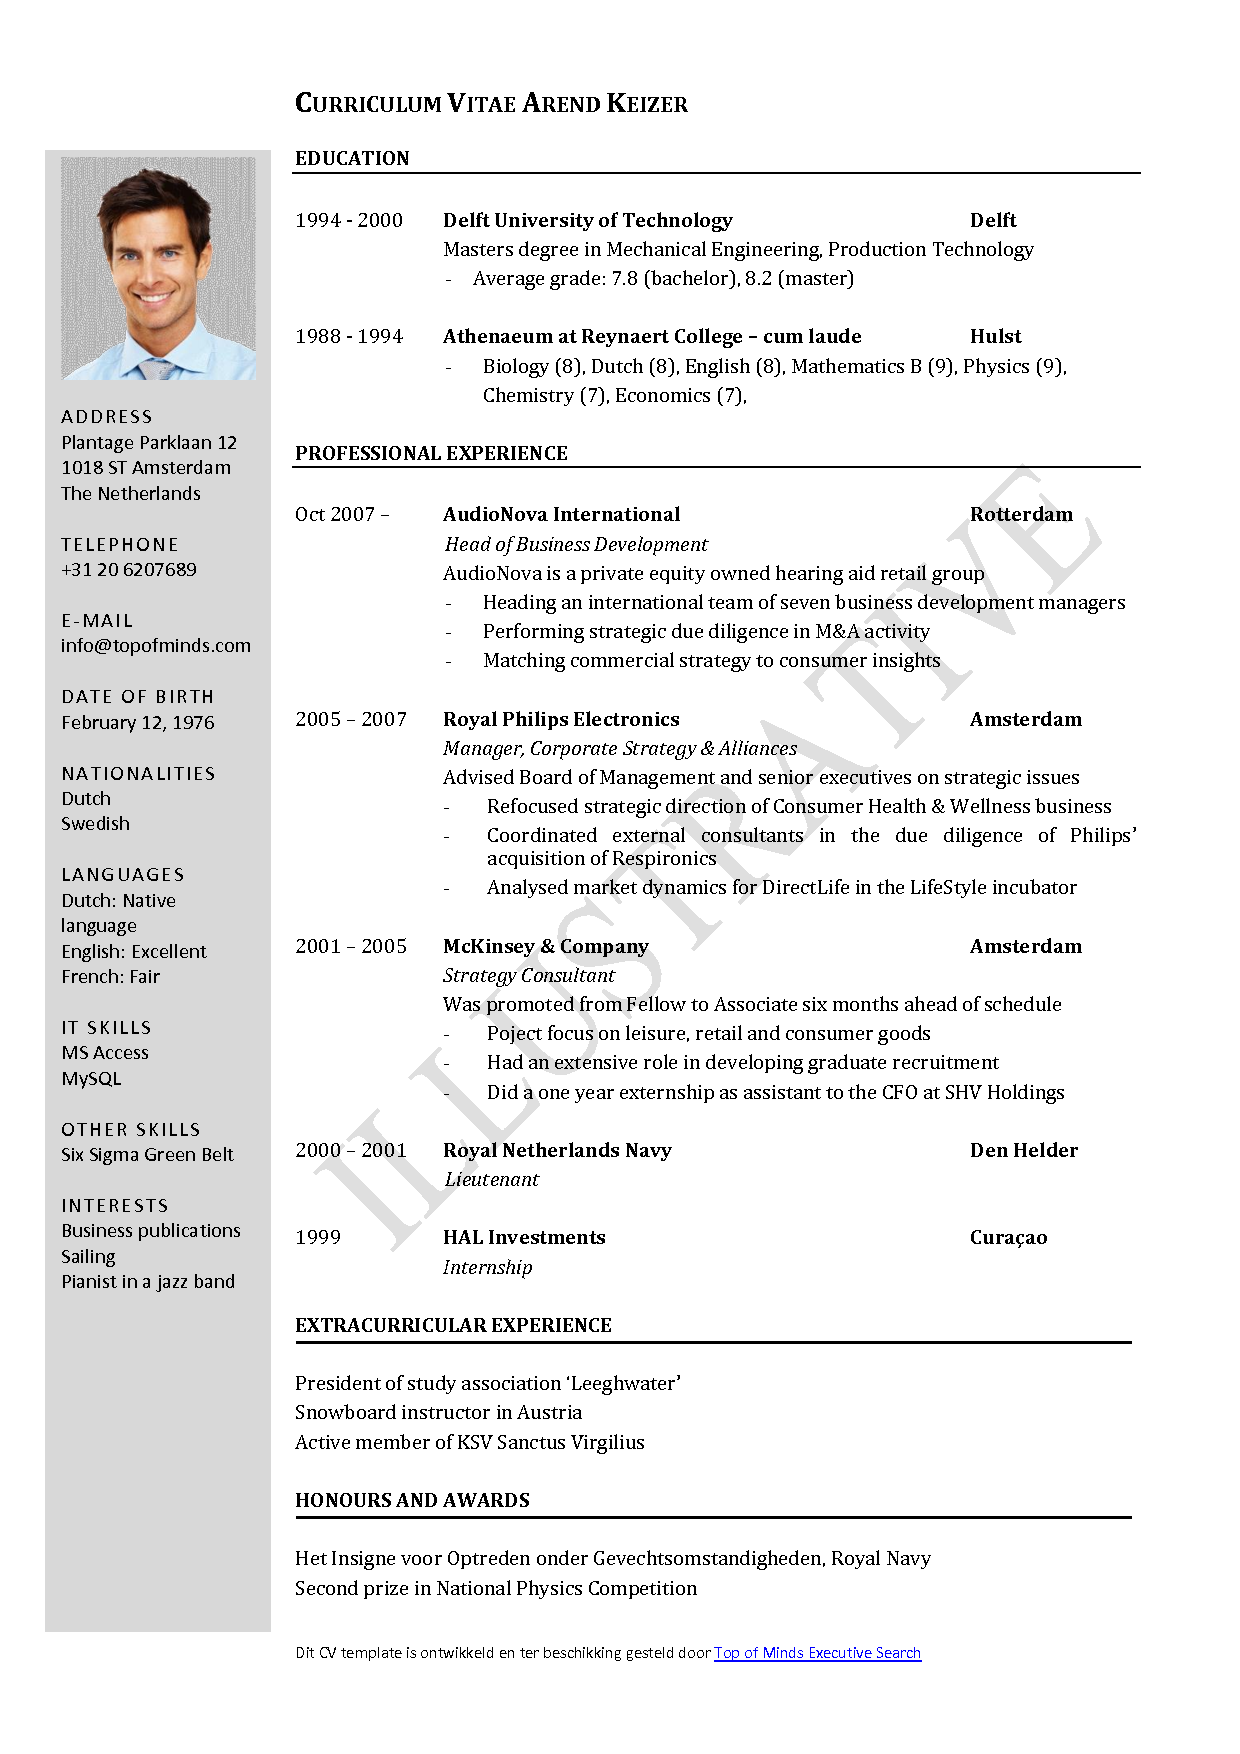 Free Curriculum Vitae Template Word | Download CV Template  Resume Free Template Download